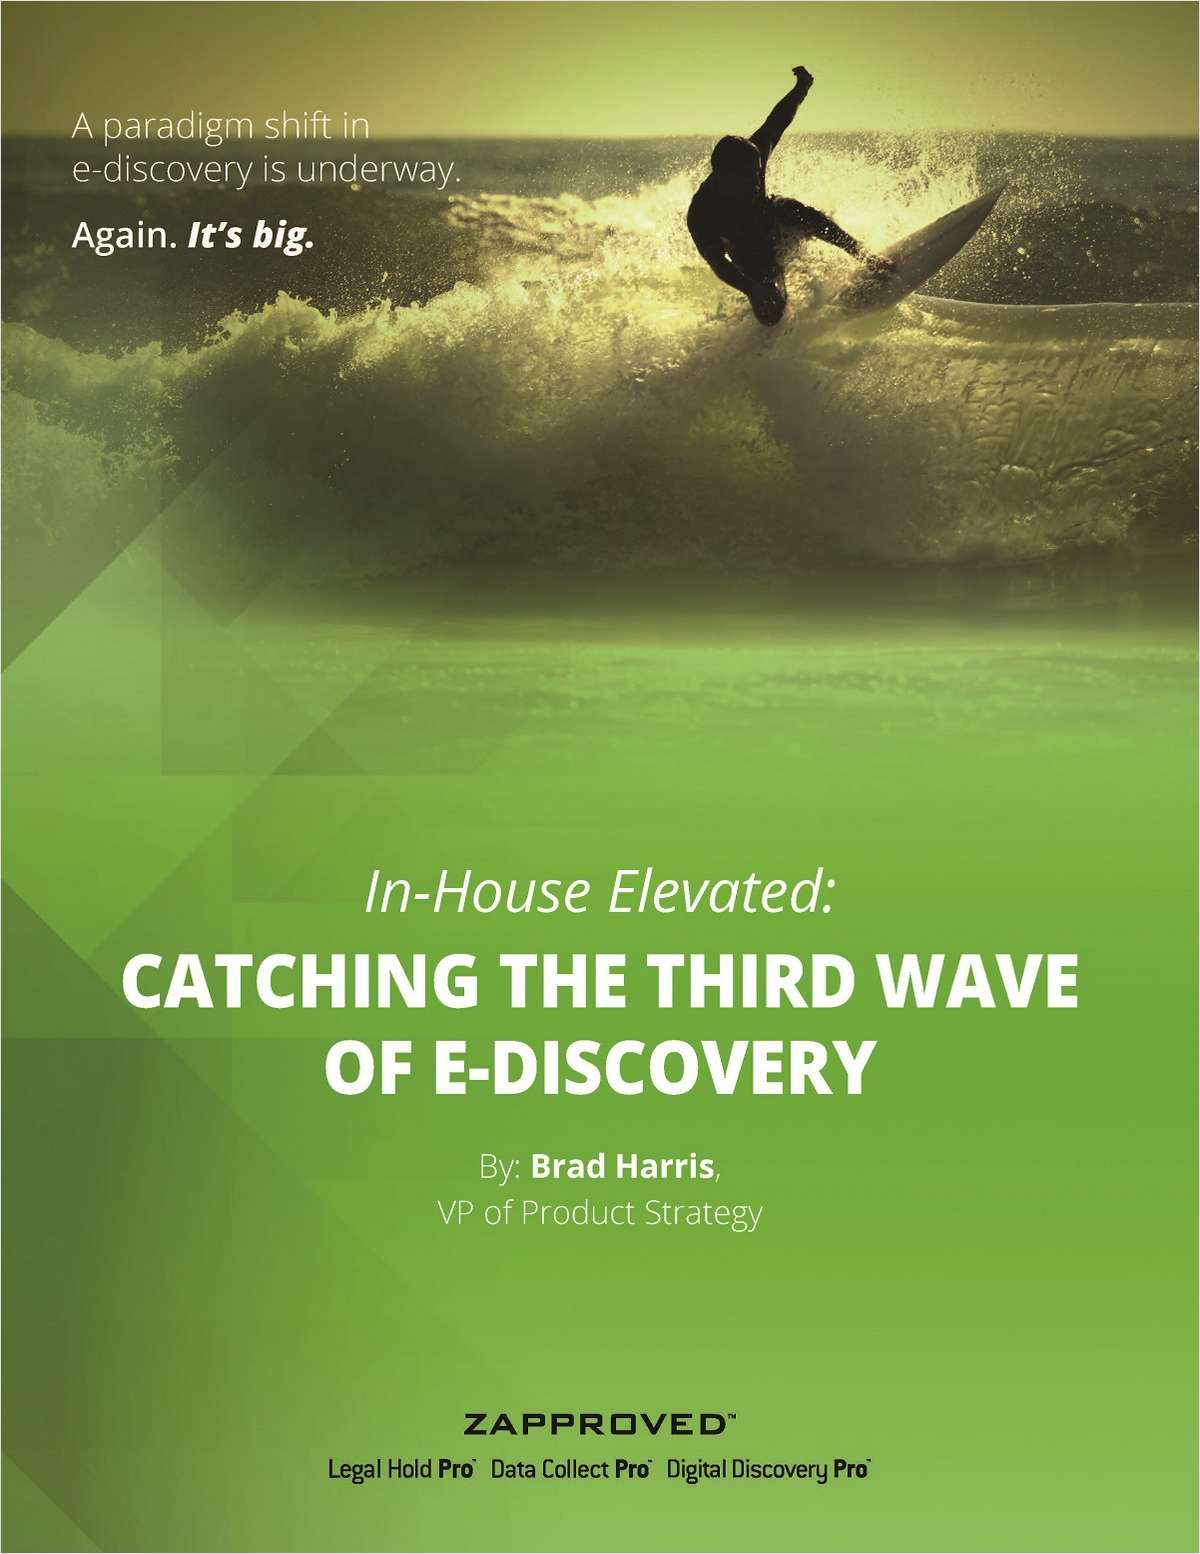 A Paradigm Shift in E-Discovery is Underway. Again. It's BIG.